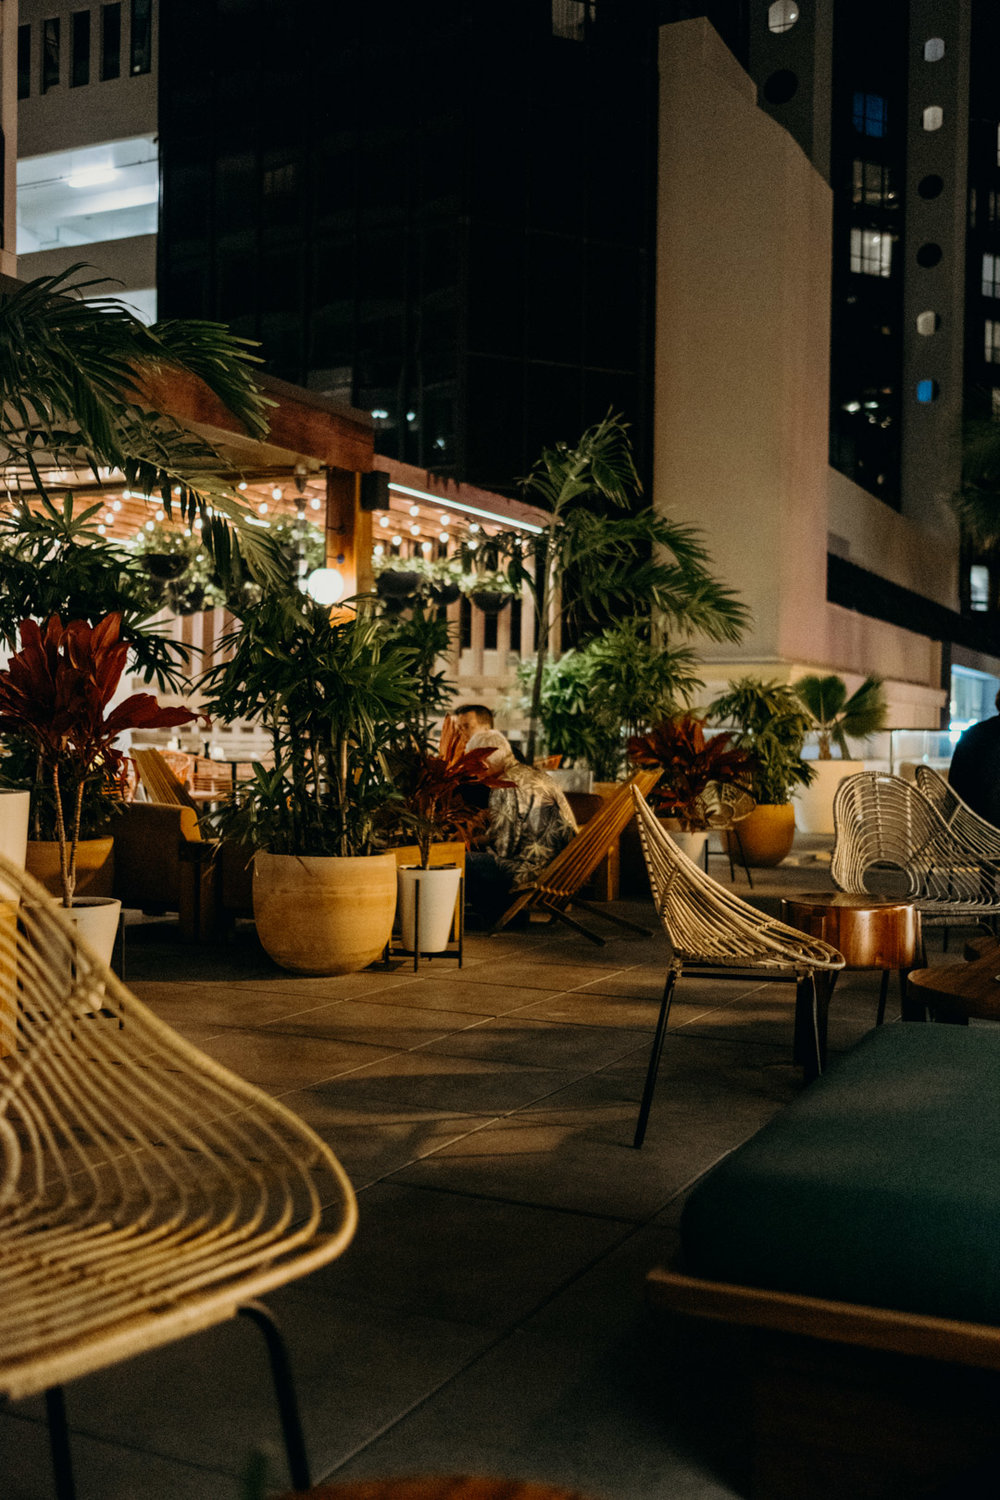 20180417_Visit Hawaii_Honolulu_The Laylow Hotel_11.jpg